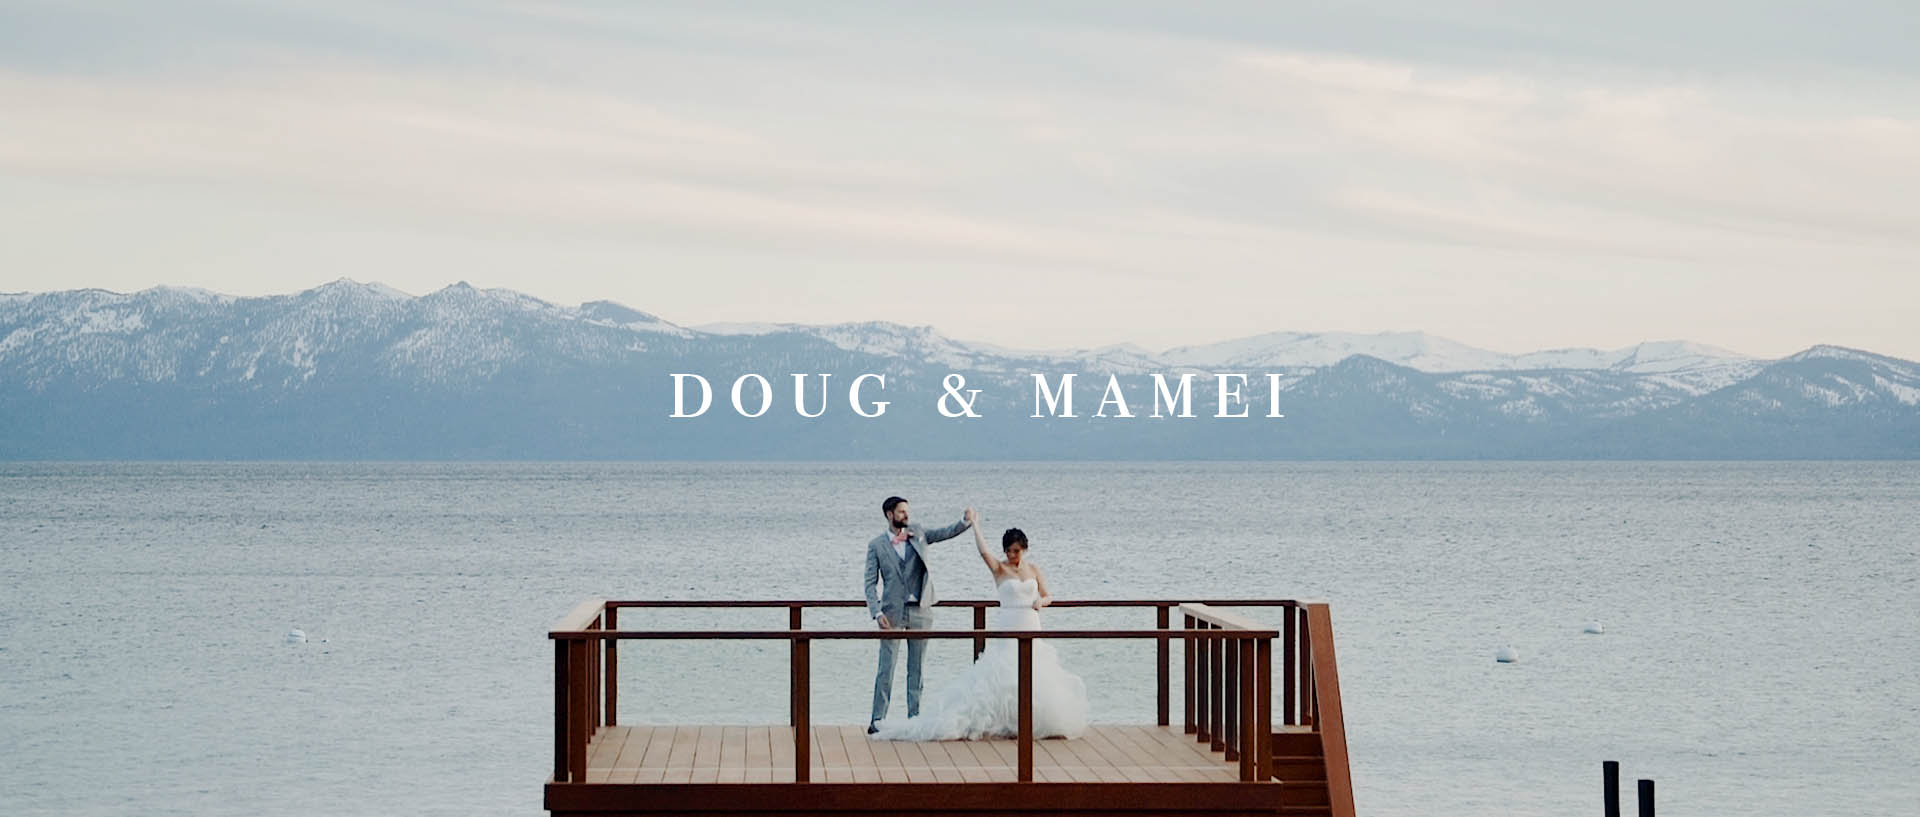 Doug + Mamei | Incline, California | a family home